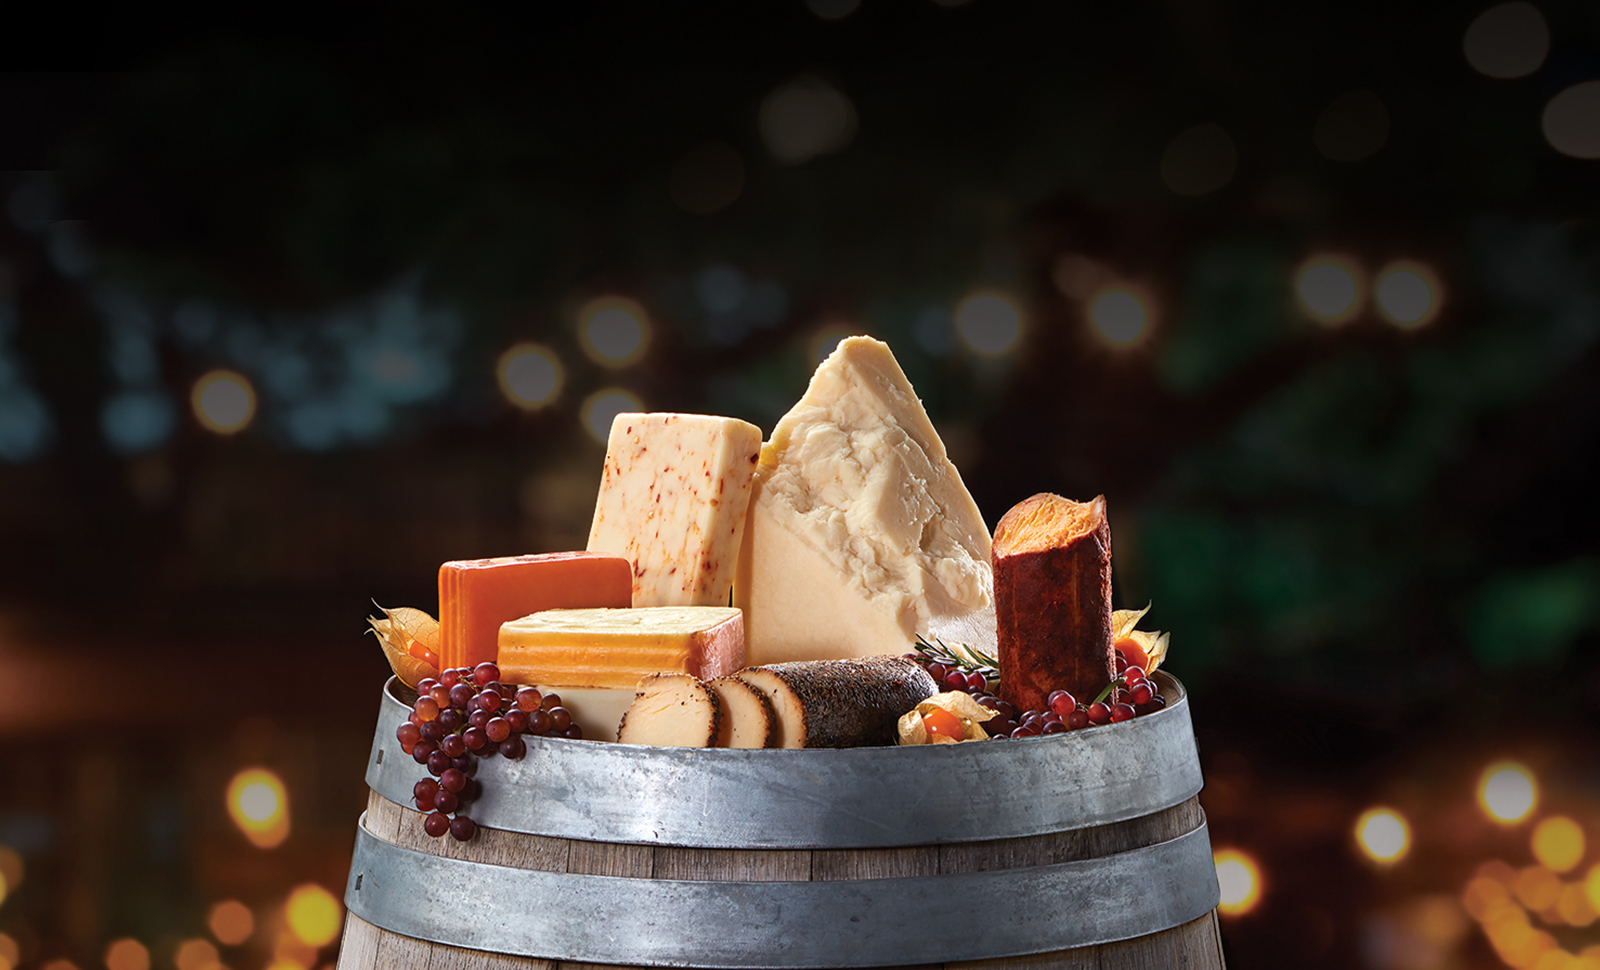 Assorted artisan, log and naturally smoked cheeses in the top of a wine barrel.